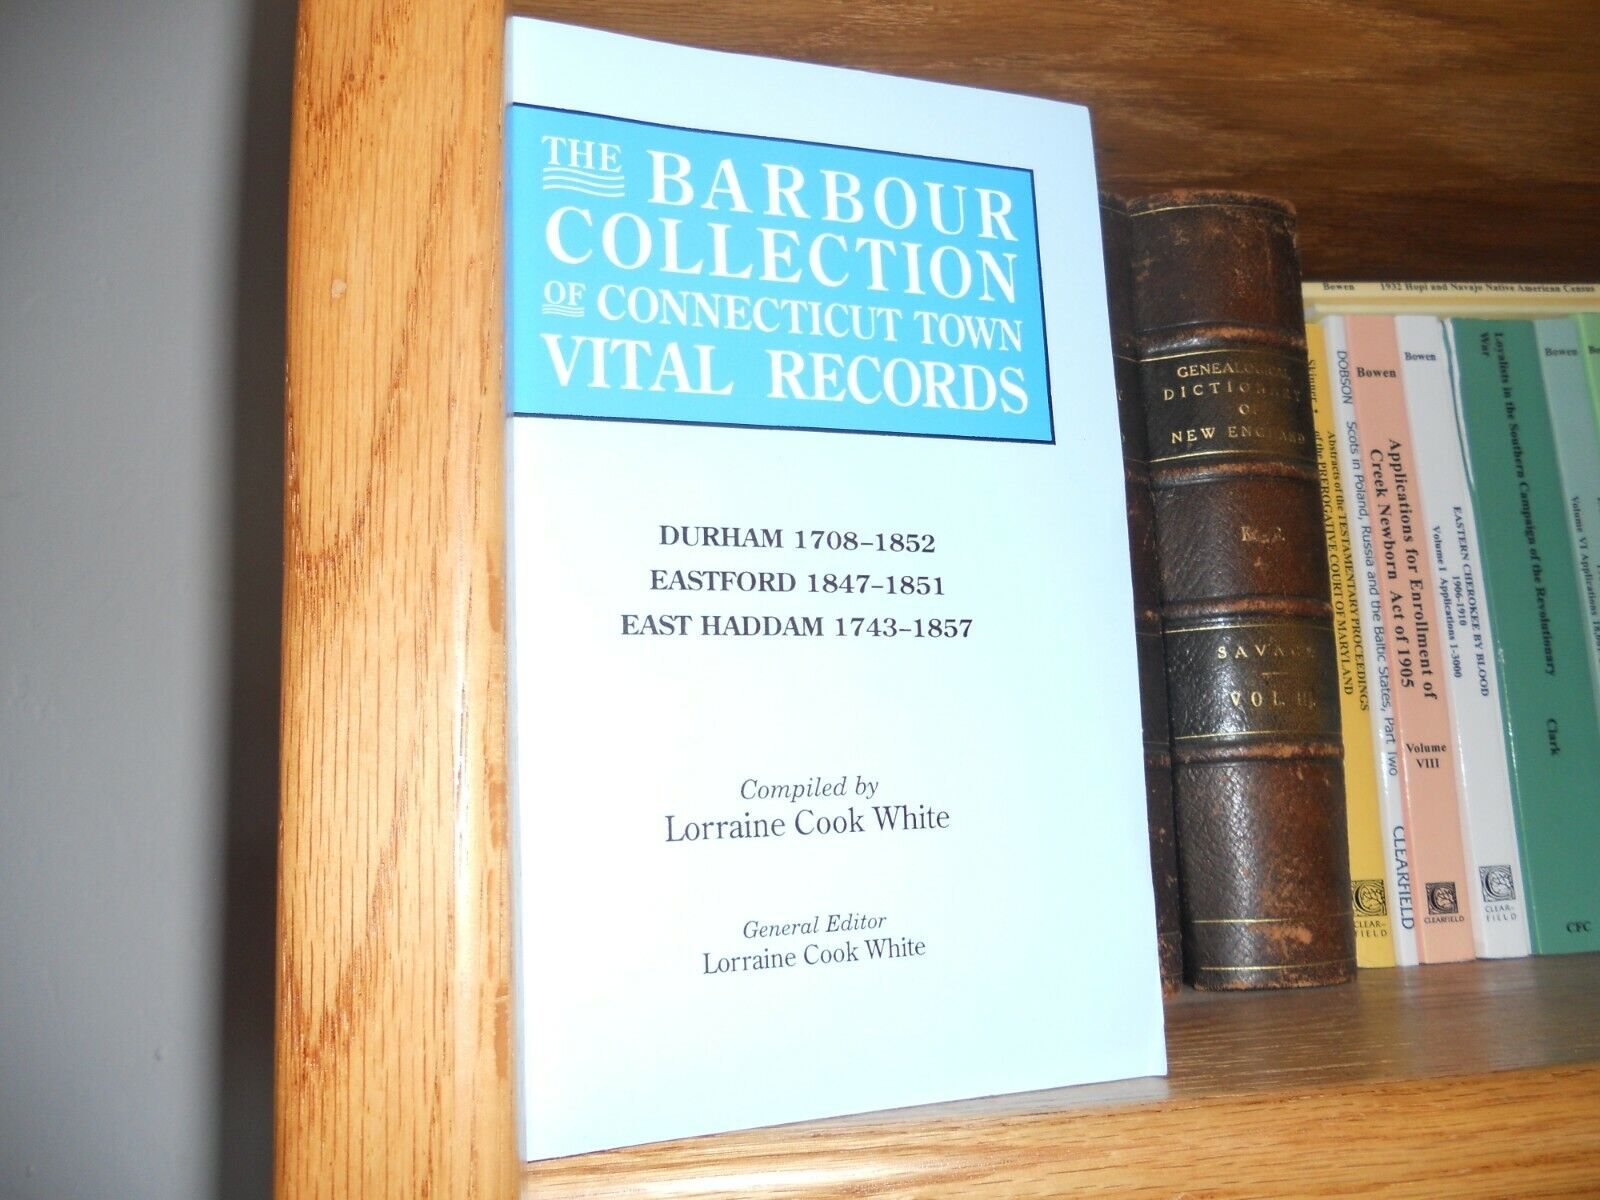 Barbour Connecticut Town Records Durham Eastford East Haddam - $24.99